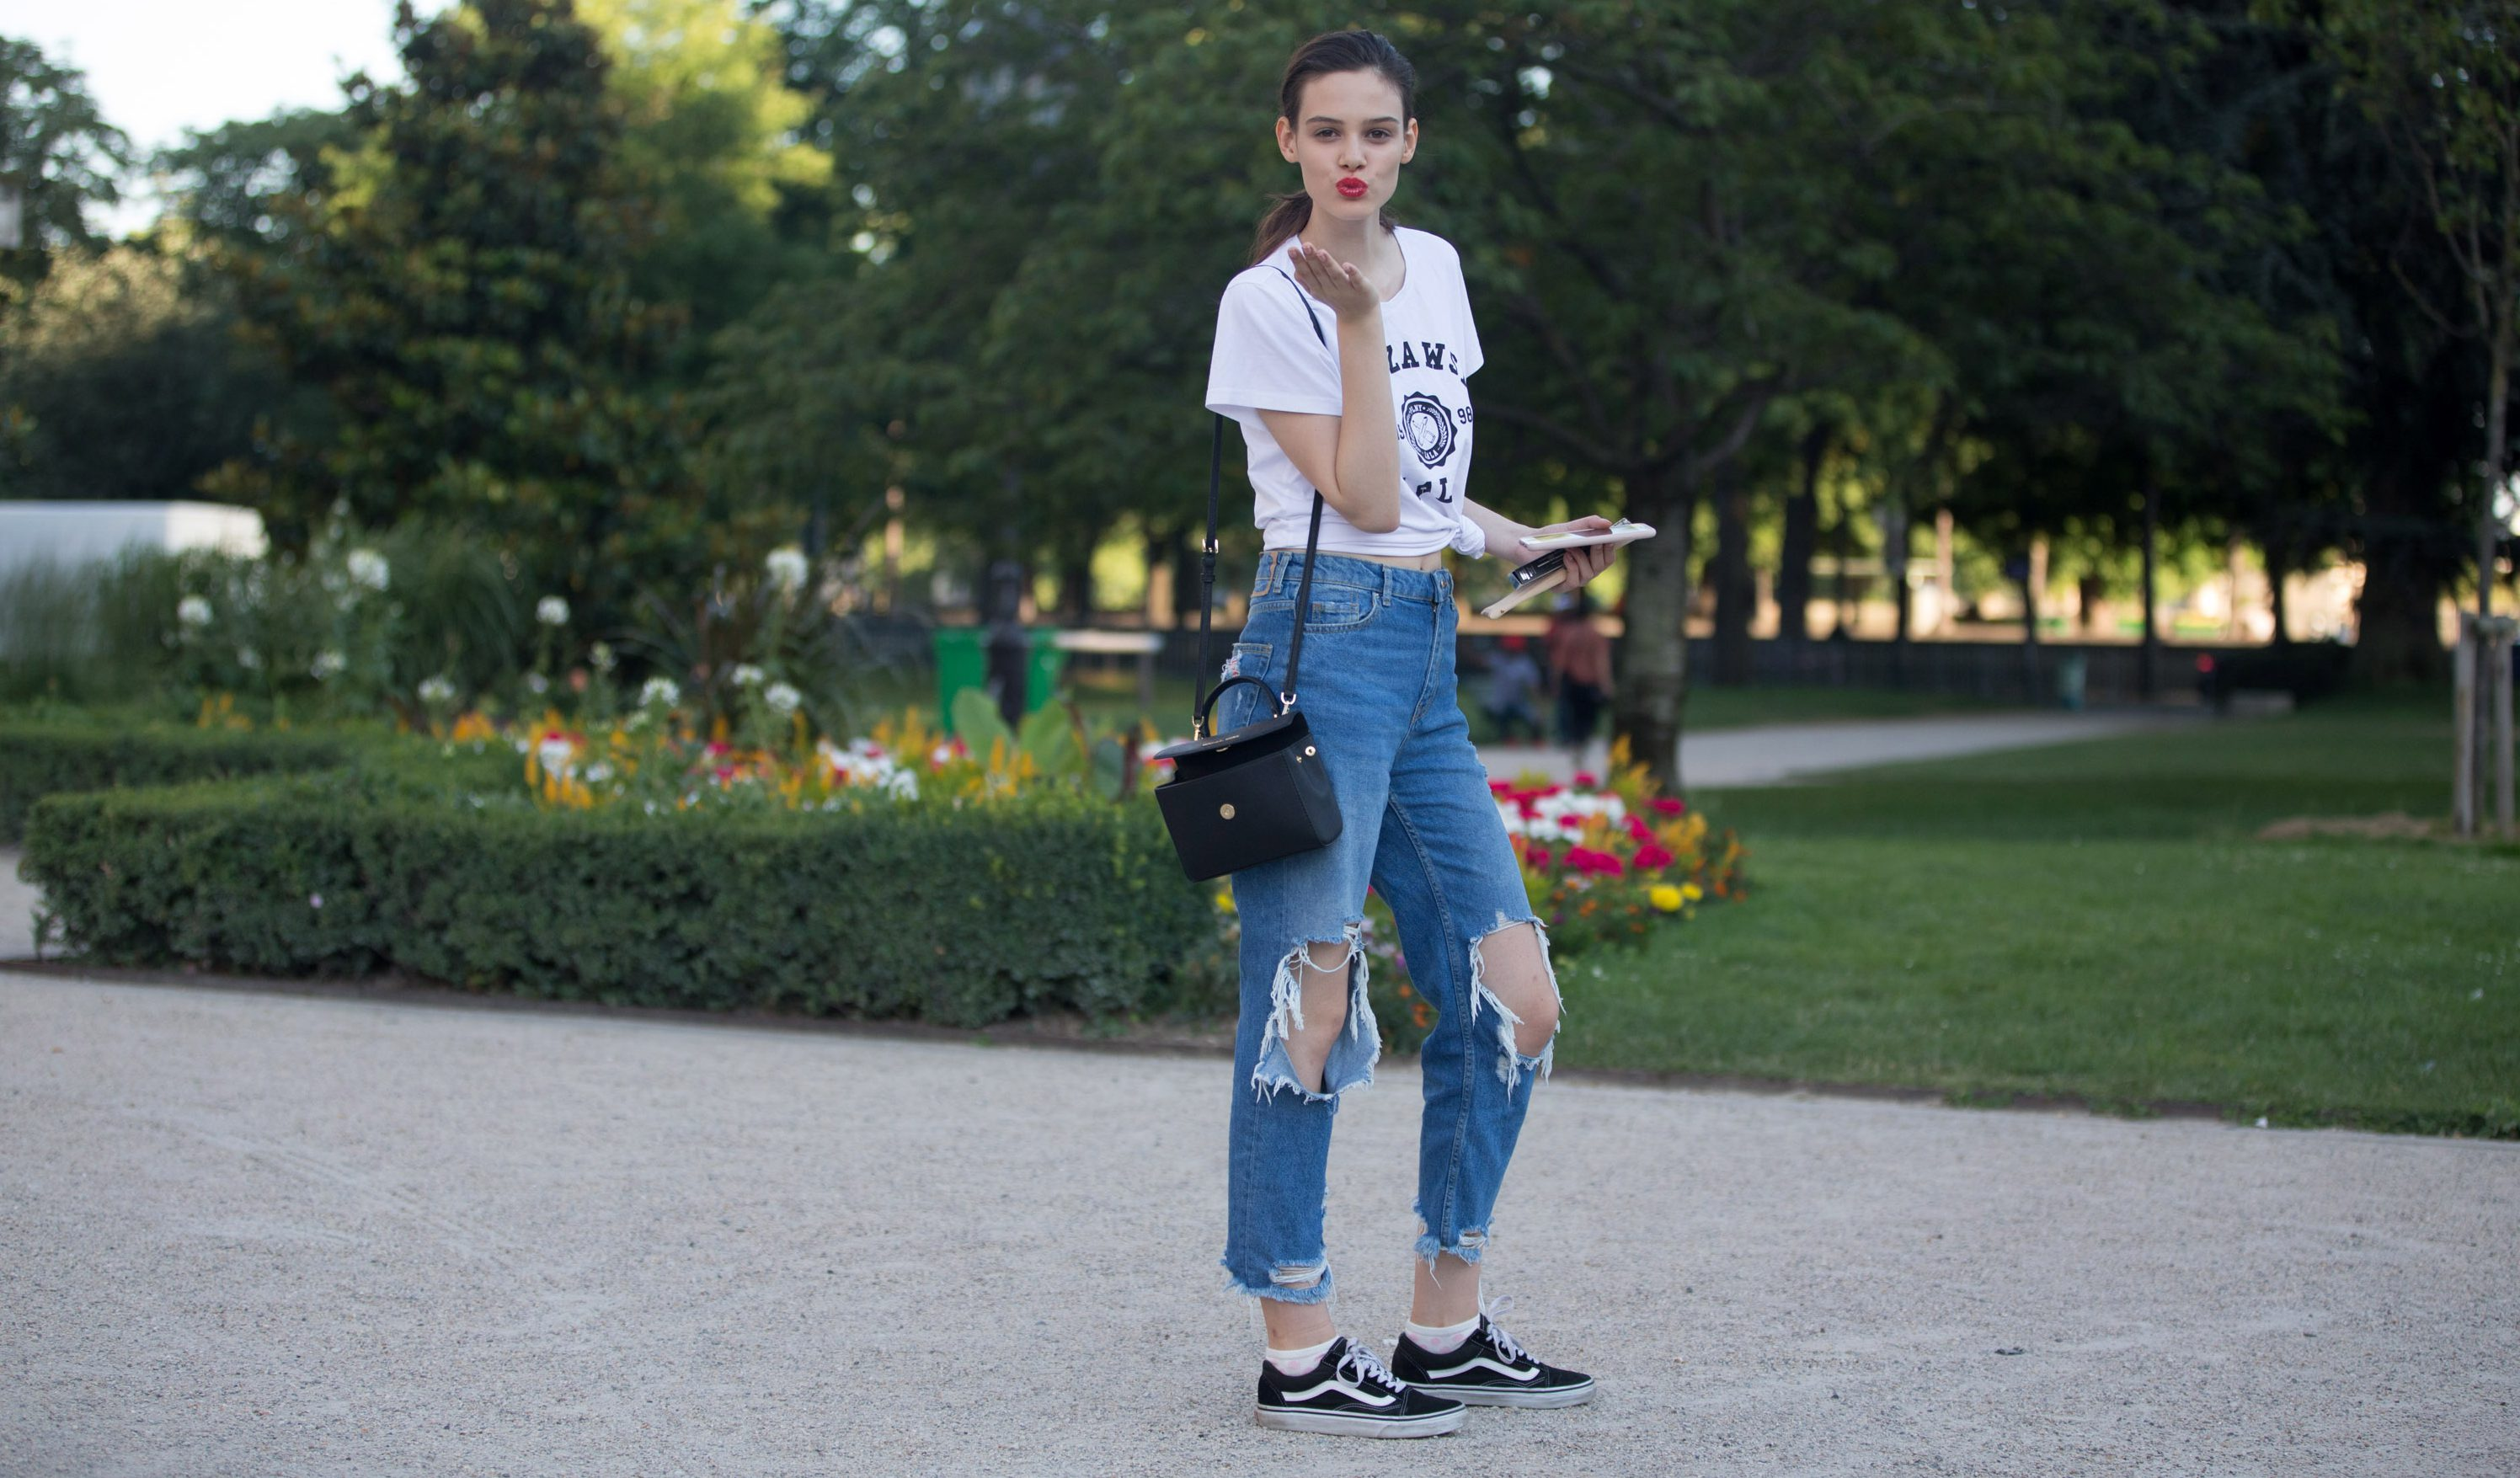 PARIS, FRANCE - JULY 03: Polish model Mag Cysewska wears a Warsaw shirt, black Vans sneakers, and blows a kiss outside the Giambattista Valli show on July 3, 2017 in Paris, France. (Photo by Melodie Jeng/Getty Images)